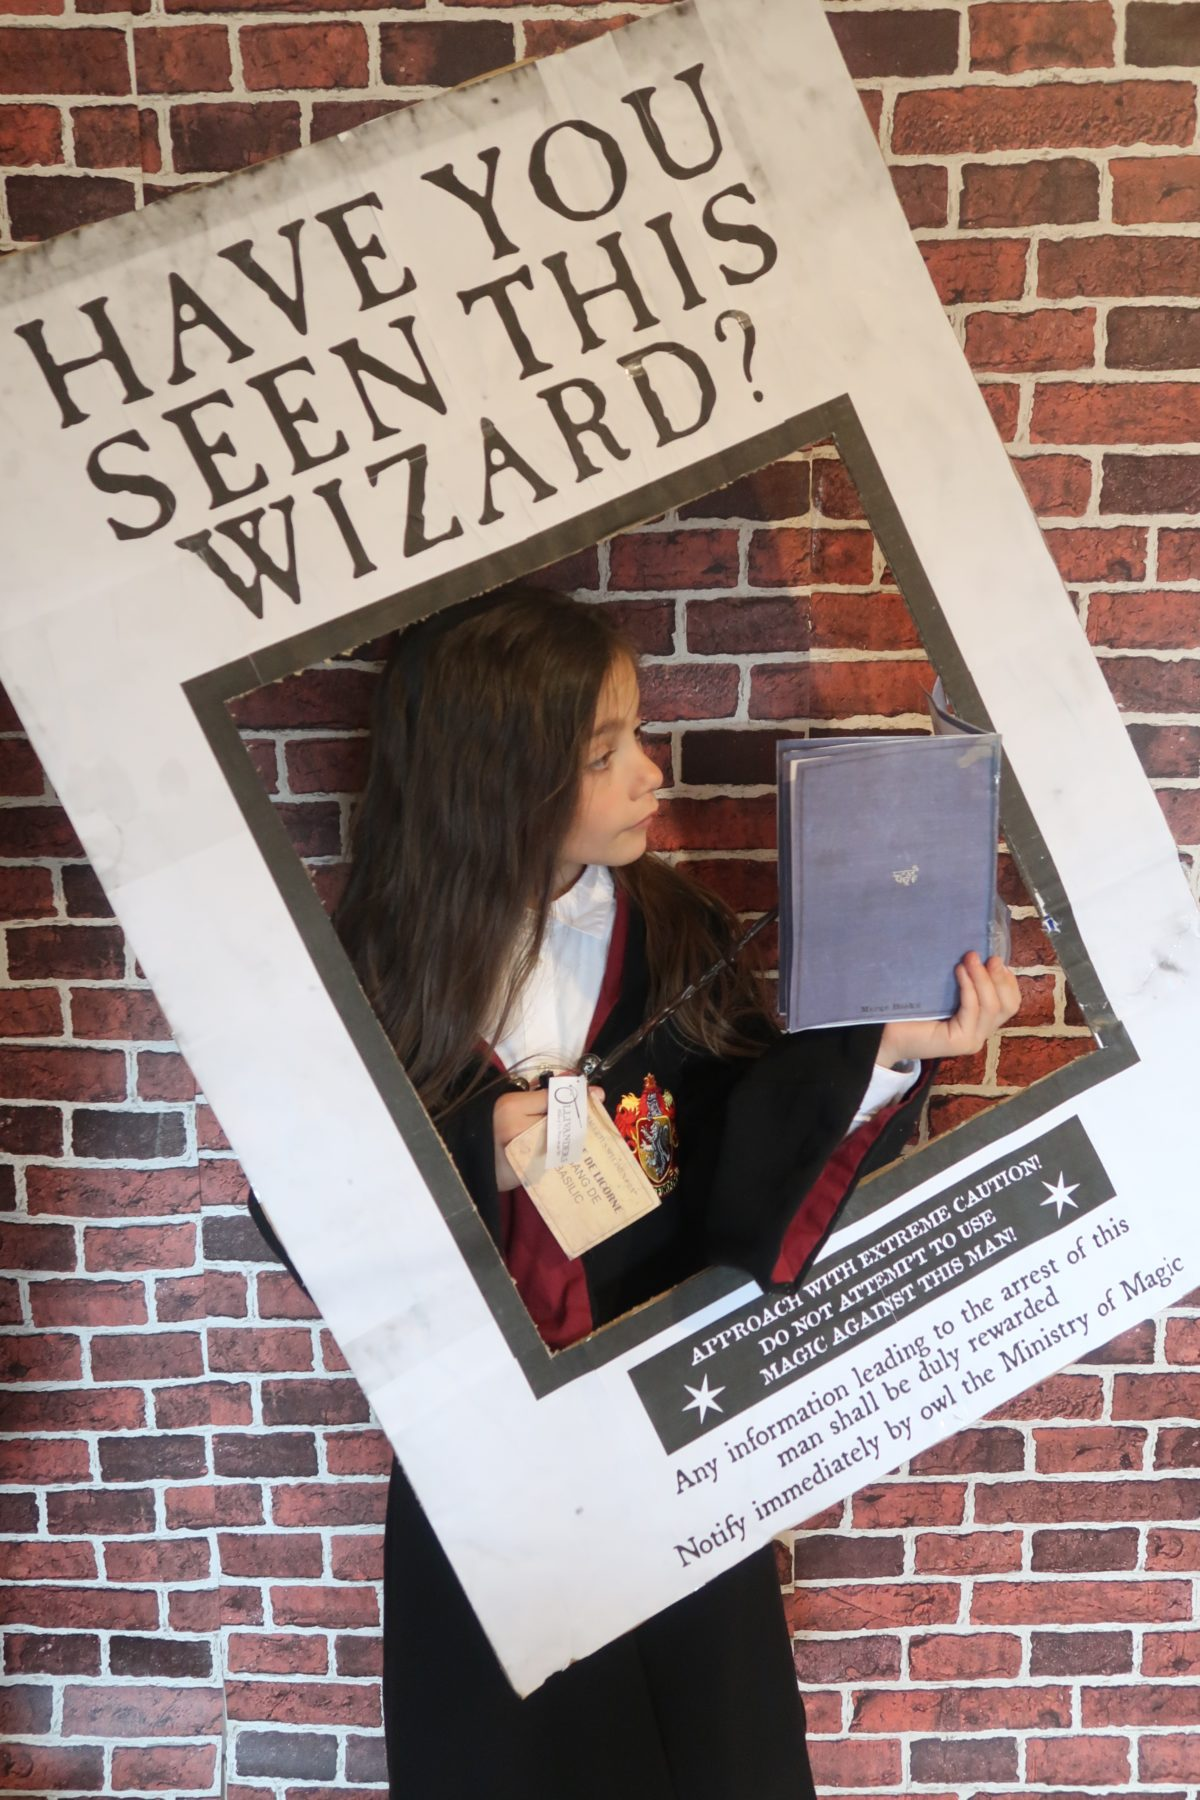 photo relating to Have You Seen This Wizard Printable referred to as Consist of yourself found this Wizard? [printable] Magical Mischief